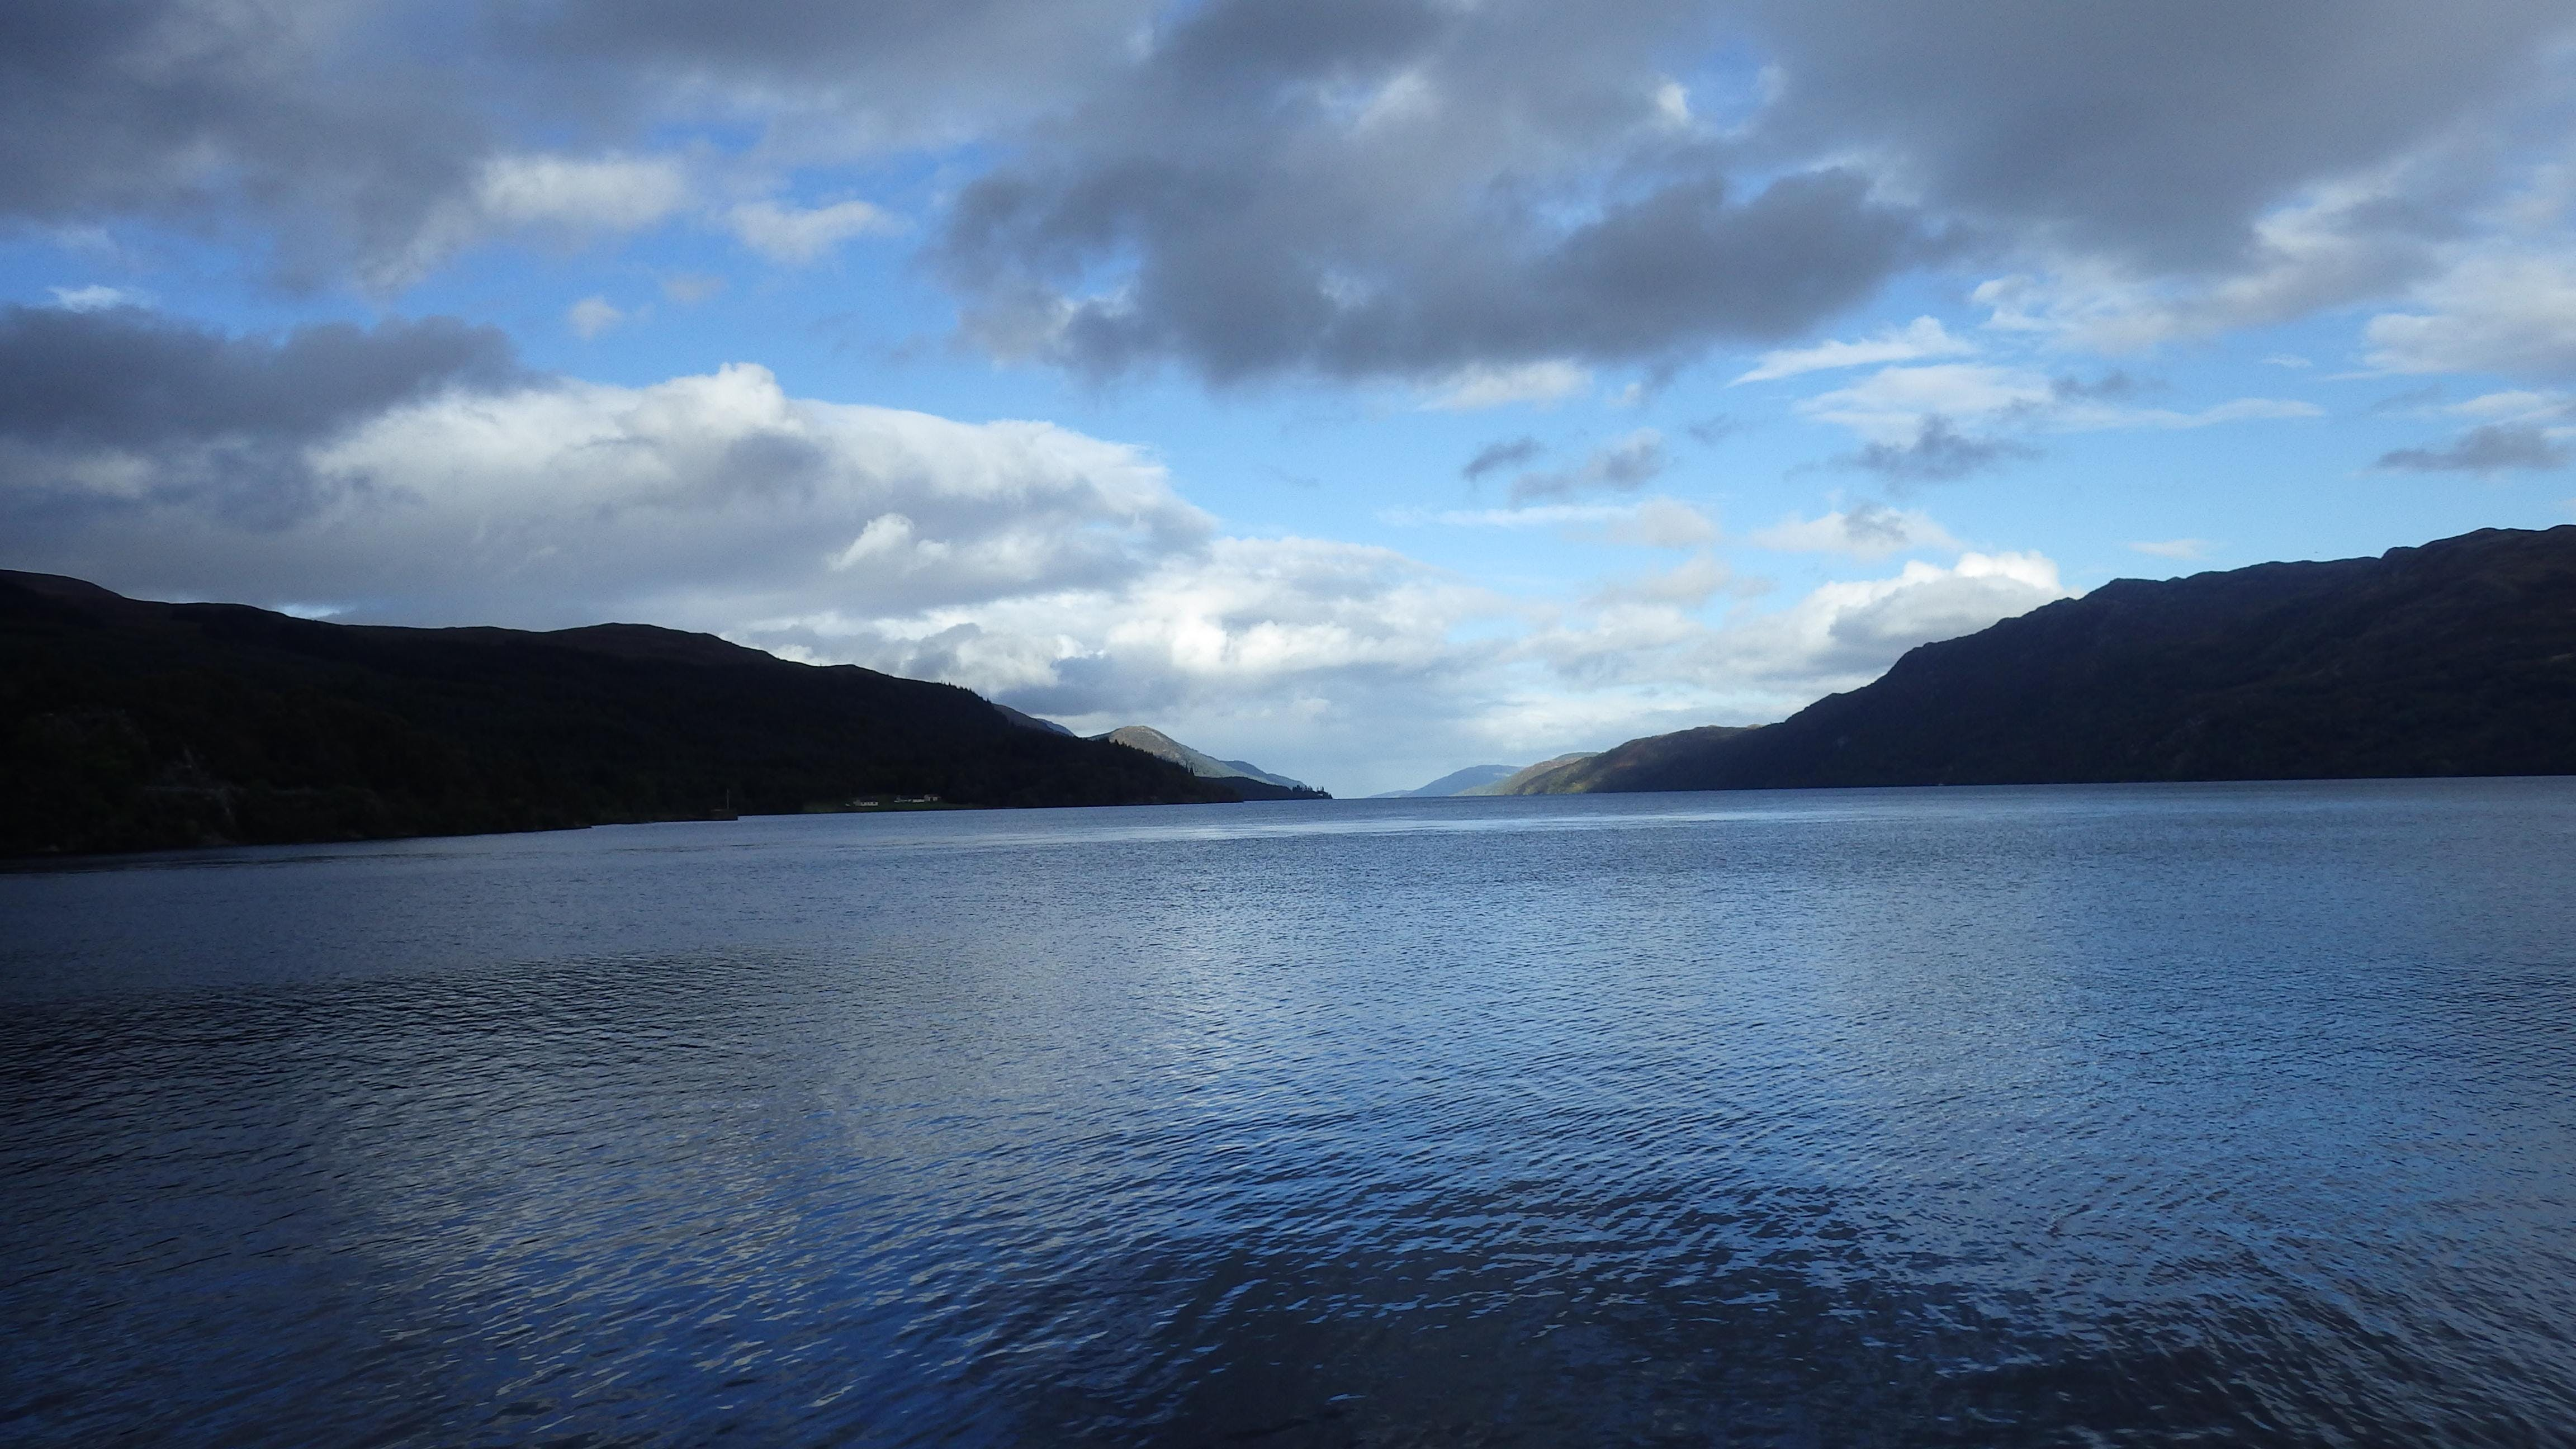 Loch Ness, Monster Mythology and Highland Cow